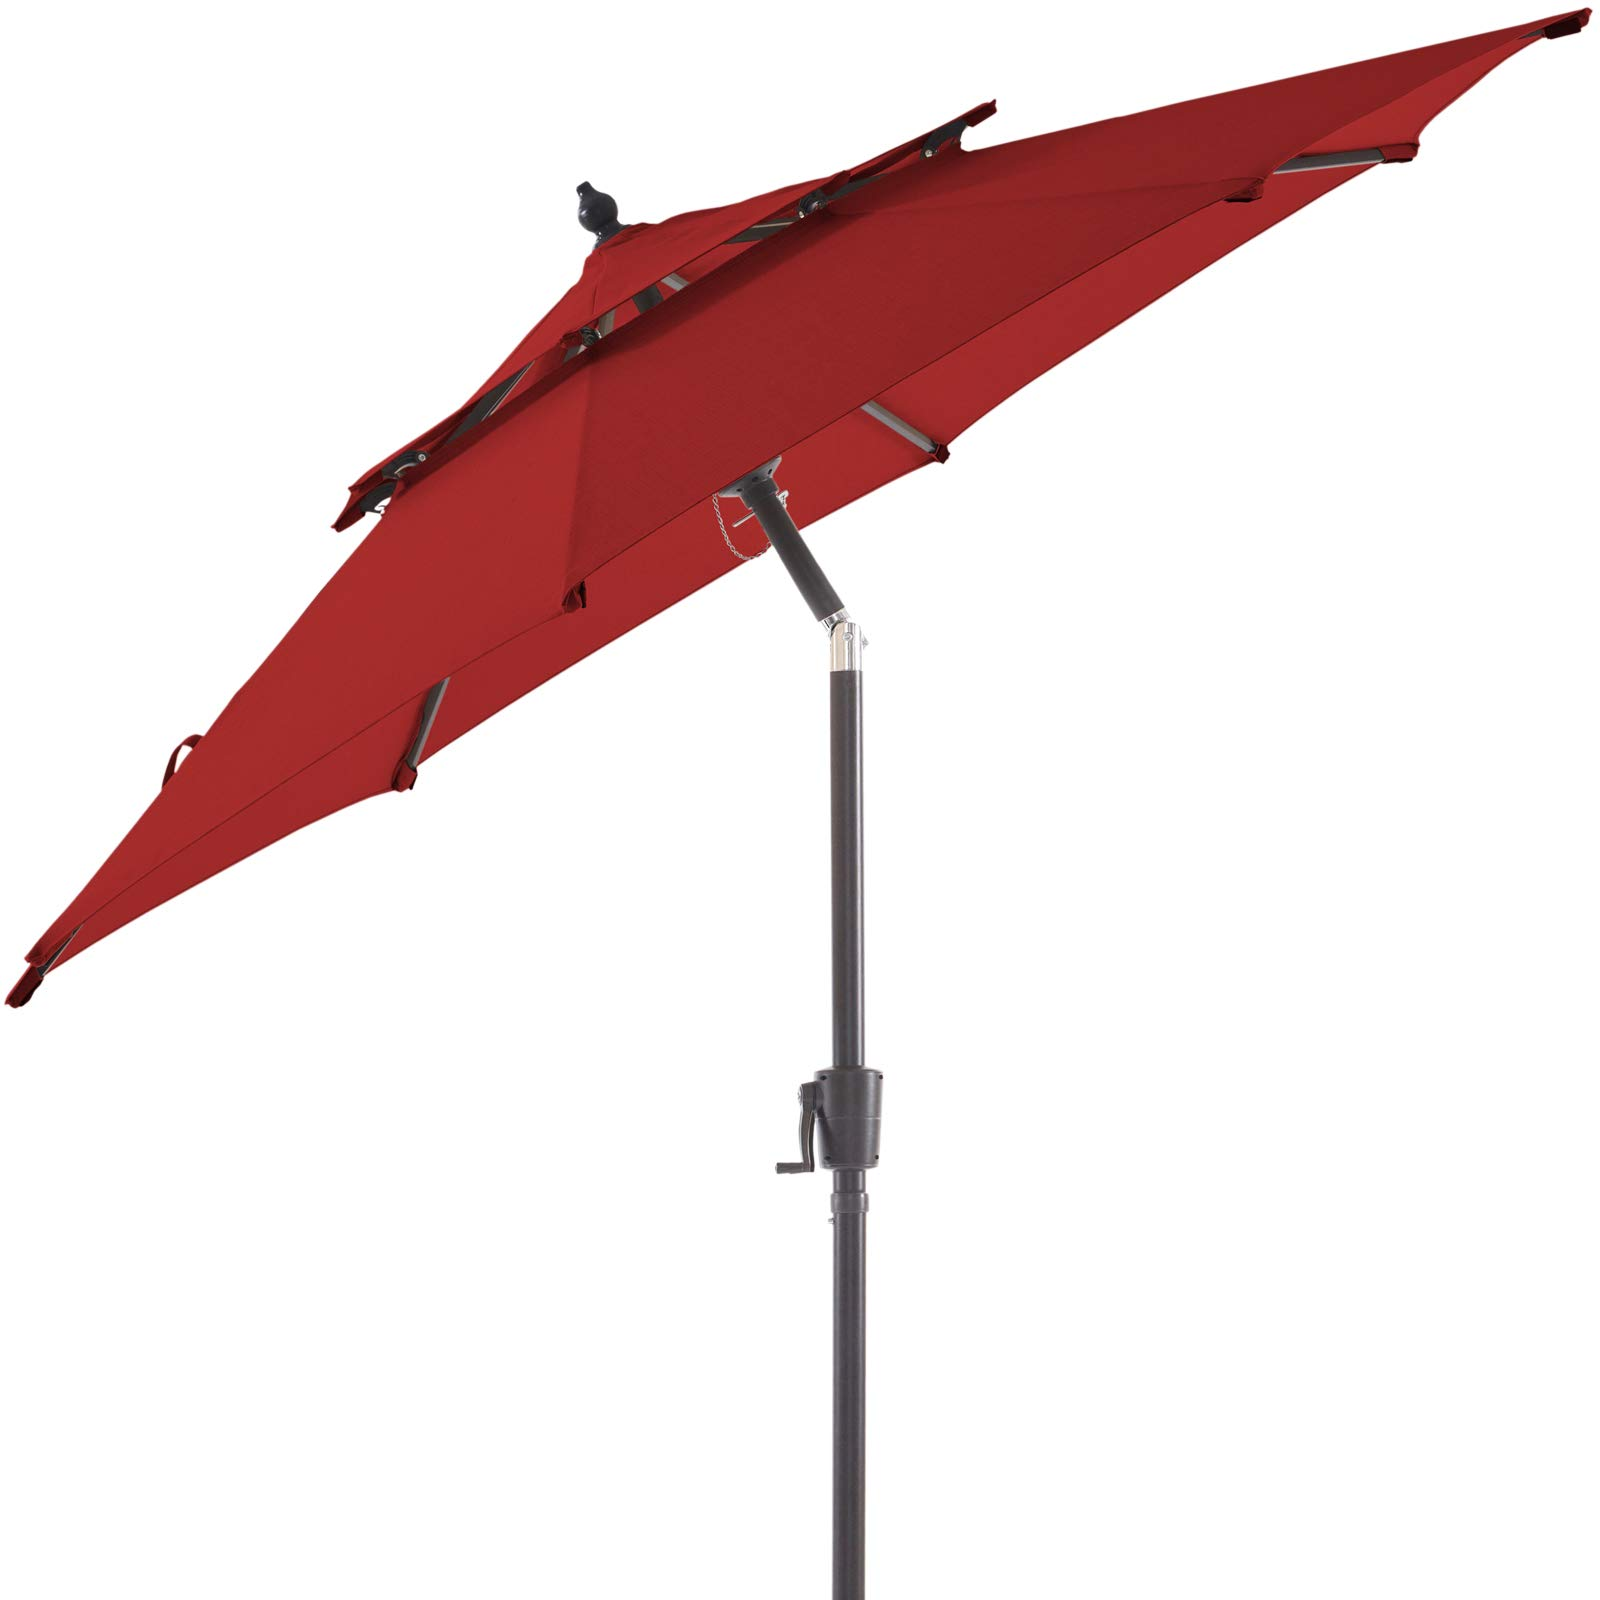 BLUU Olefin 9 FT 2 Tier Patio Market Umbrella Outdoor Table Umbrellas, 3-year Nonfading Olefin Canopy, Market Center Umbrellas with 8 Sturdy Ribs & Push Button Tilt for Garden, Lawn & Pool (Apple Red)